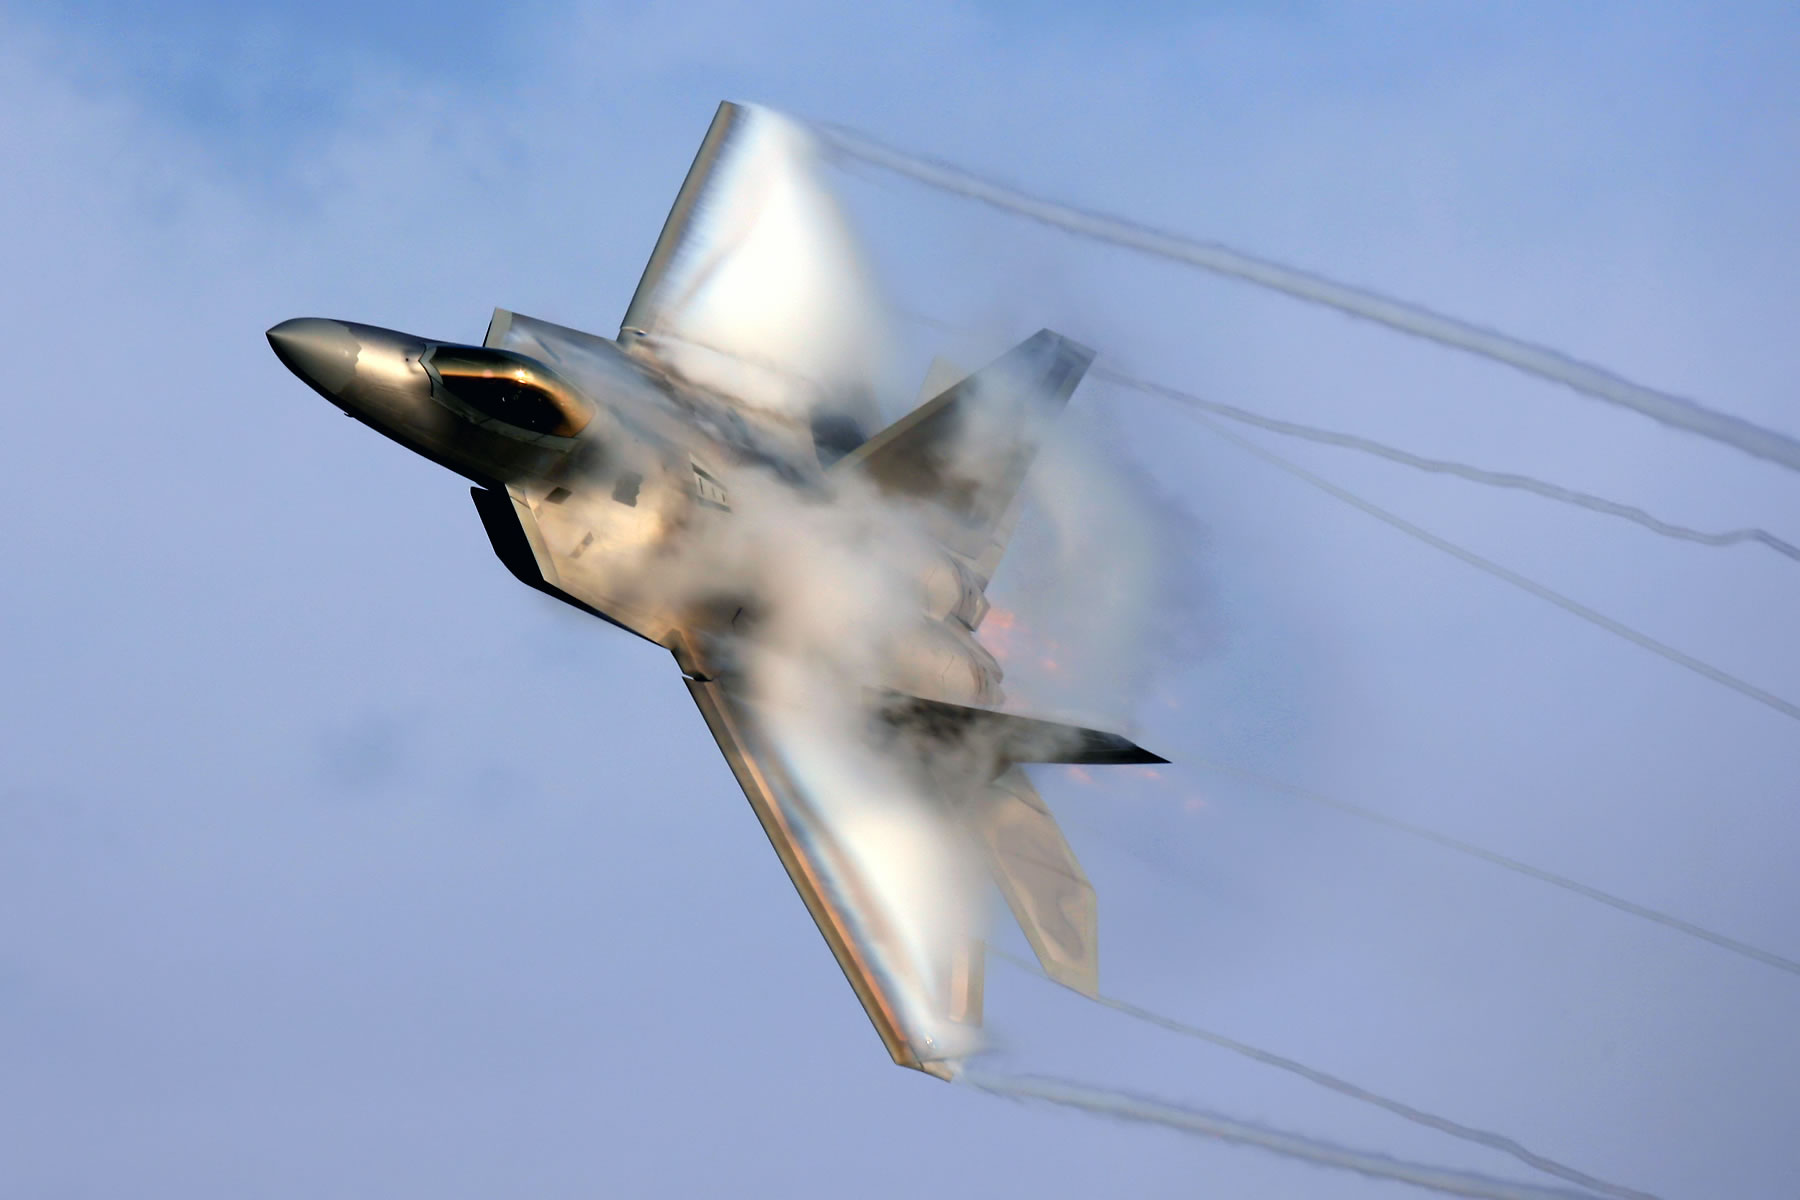 F22 Raptor With Vapor   Transport Wallpaper Image featuring Aircraft 1800x1200